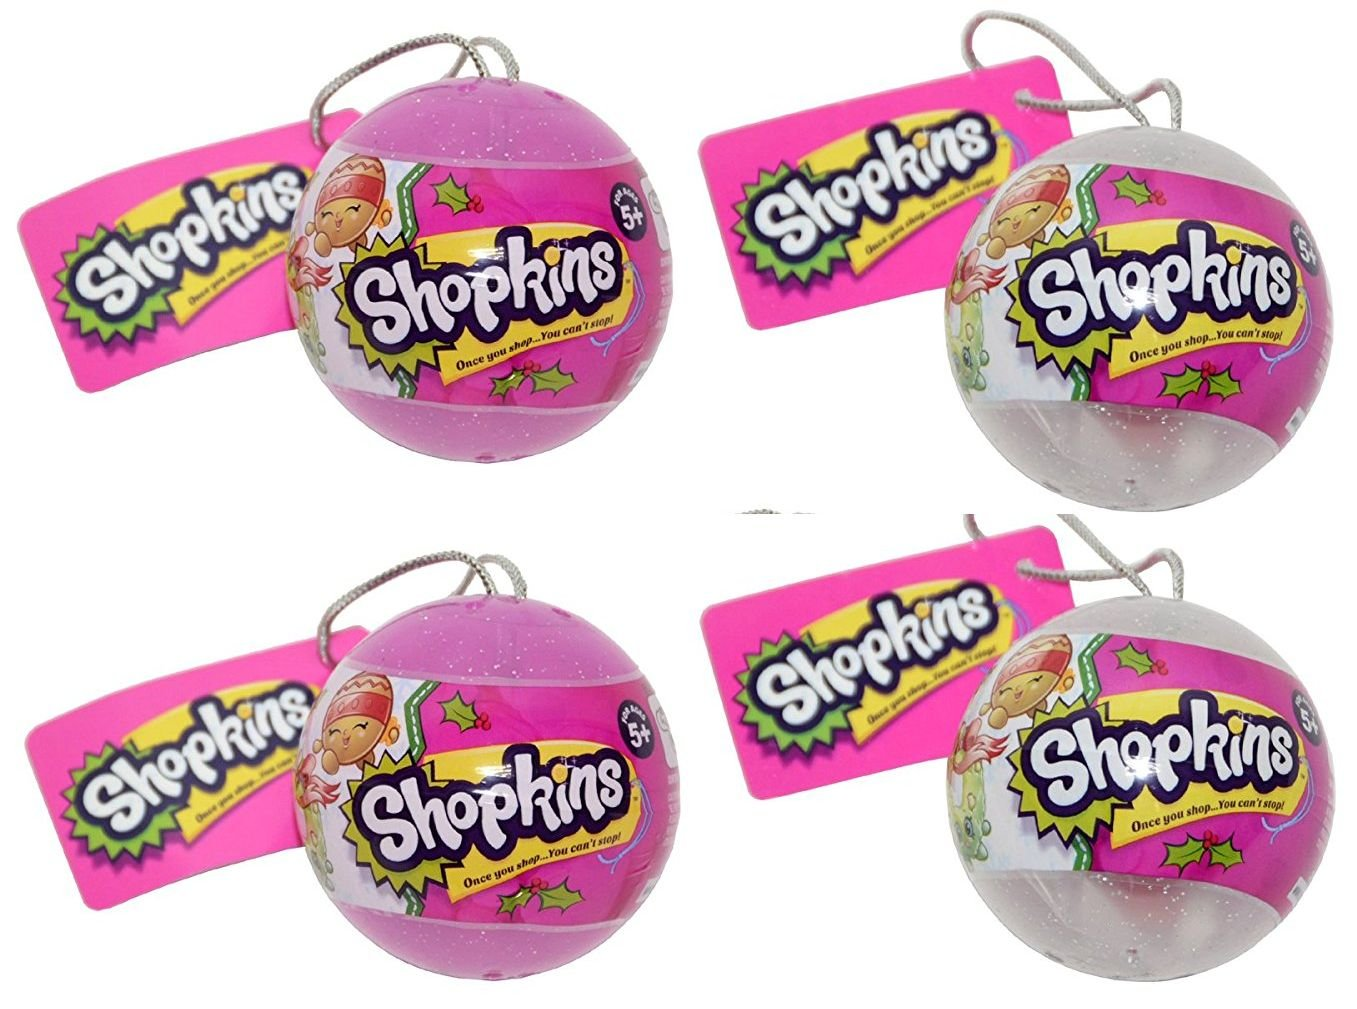 Shopkins Holiday Ornaments 2016 Surprise 4 Pack